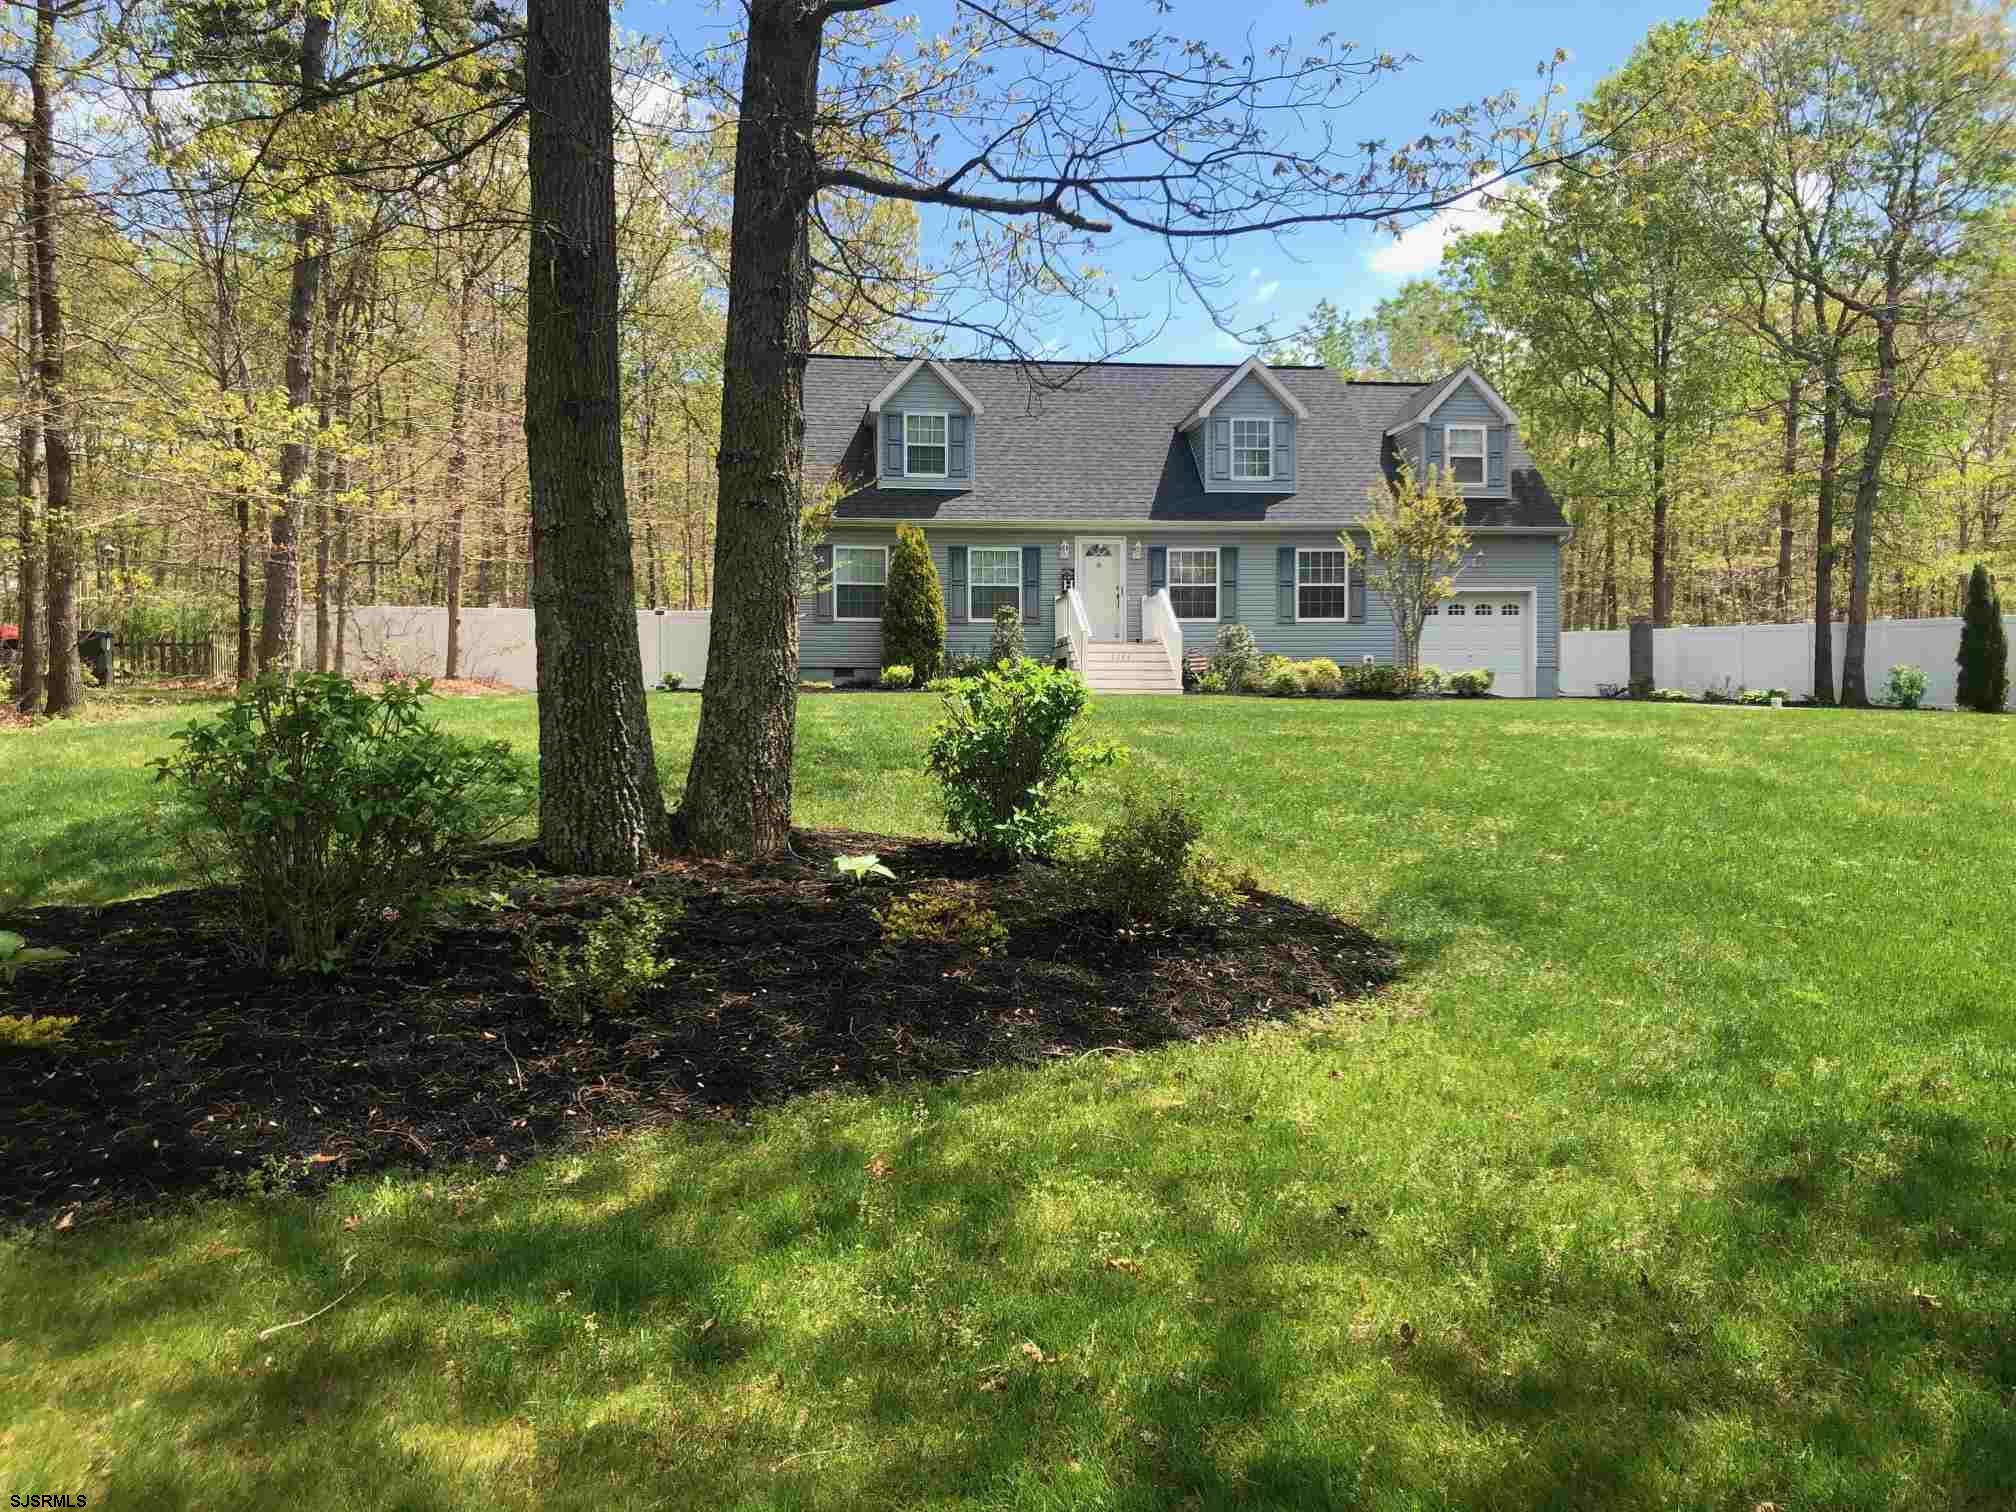 STORYBOOK CAPE COD Nestled on Beautifully Landscaped 1.17 Acres ! 4 Bedrooms 2 Full Baths Immaculate